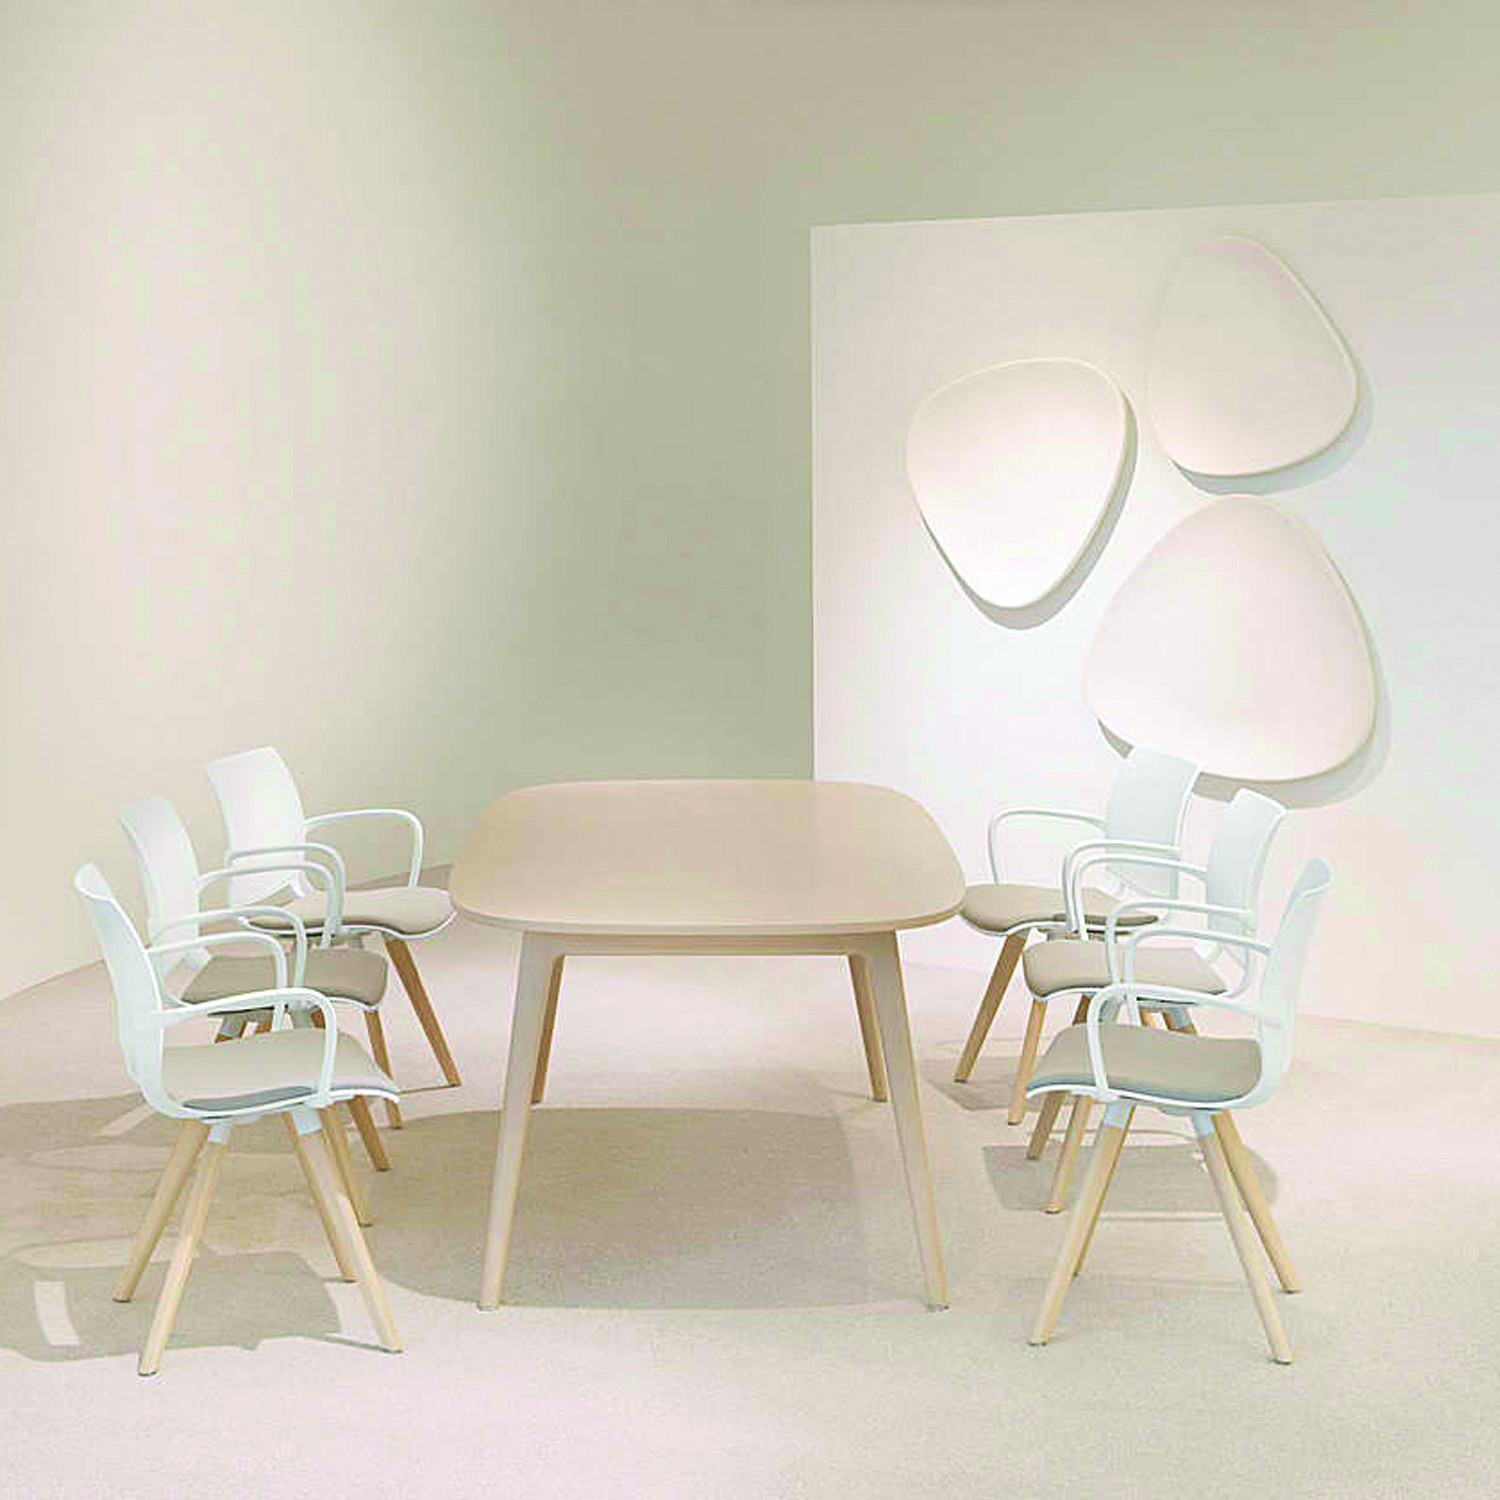 6100 San_Siro Dining Table